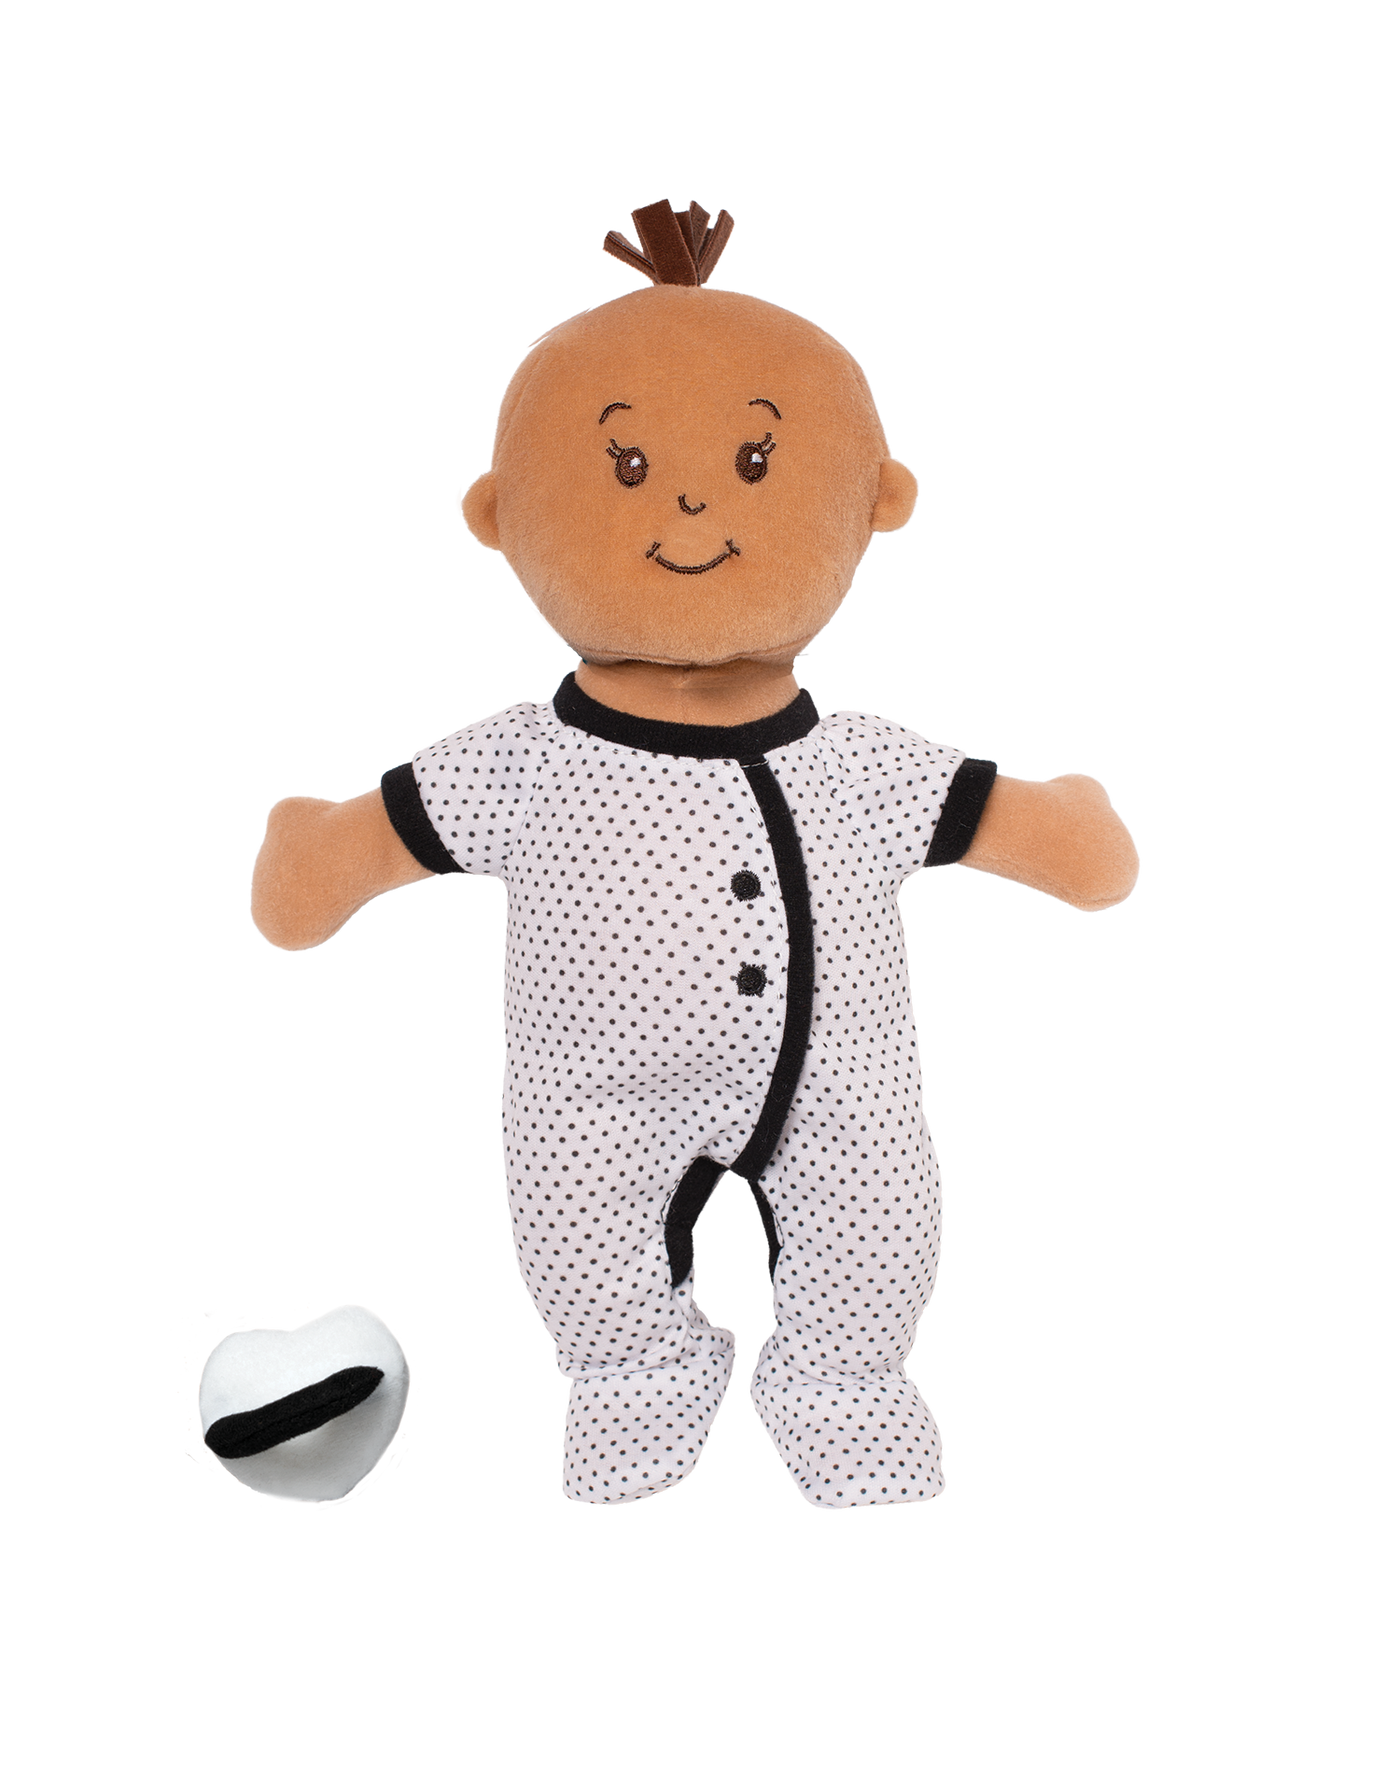 Wee Baby Stella Customized Doll - Manhattan Toy